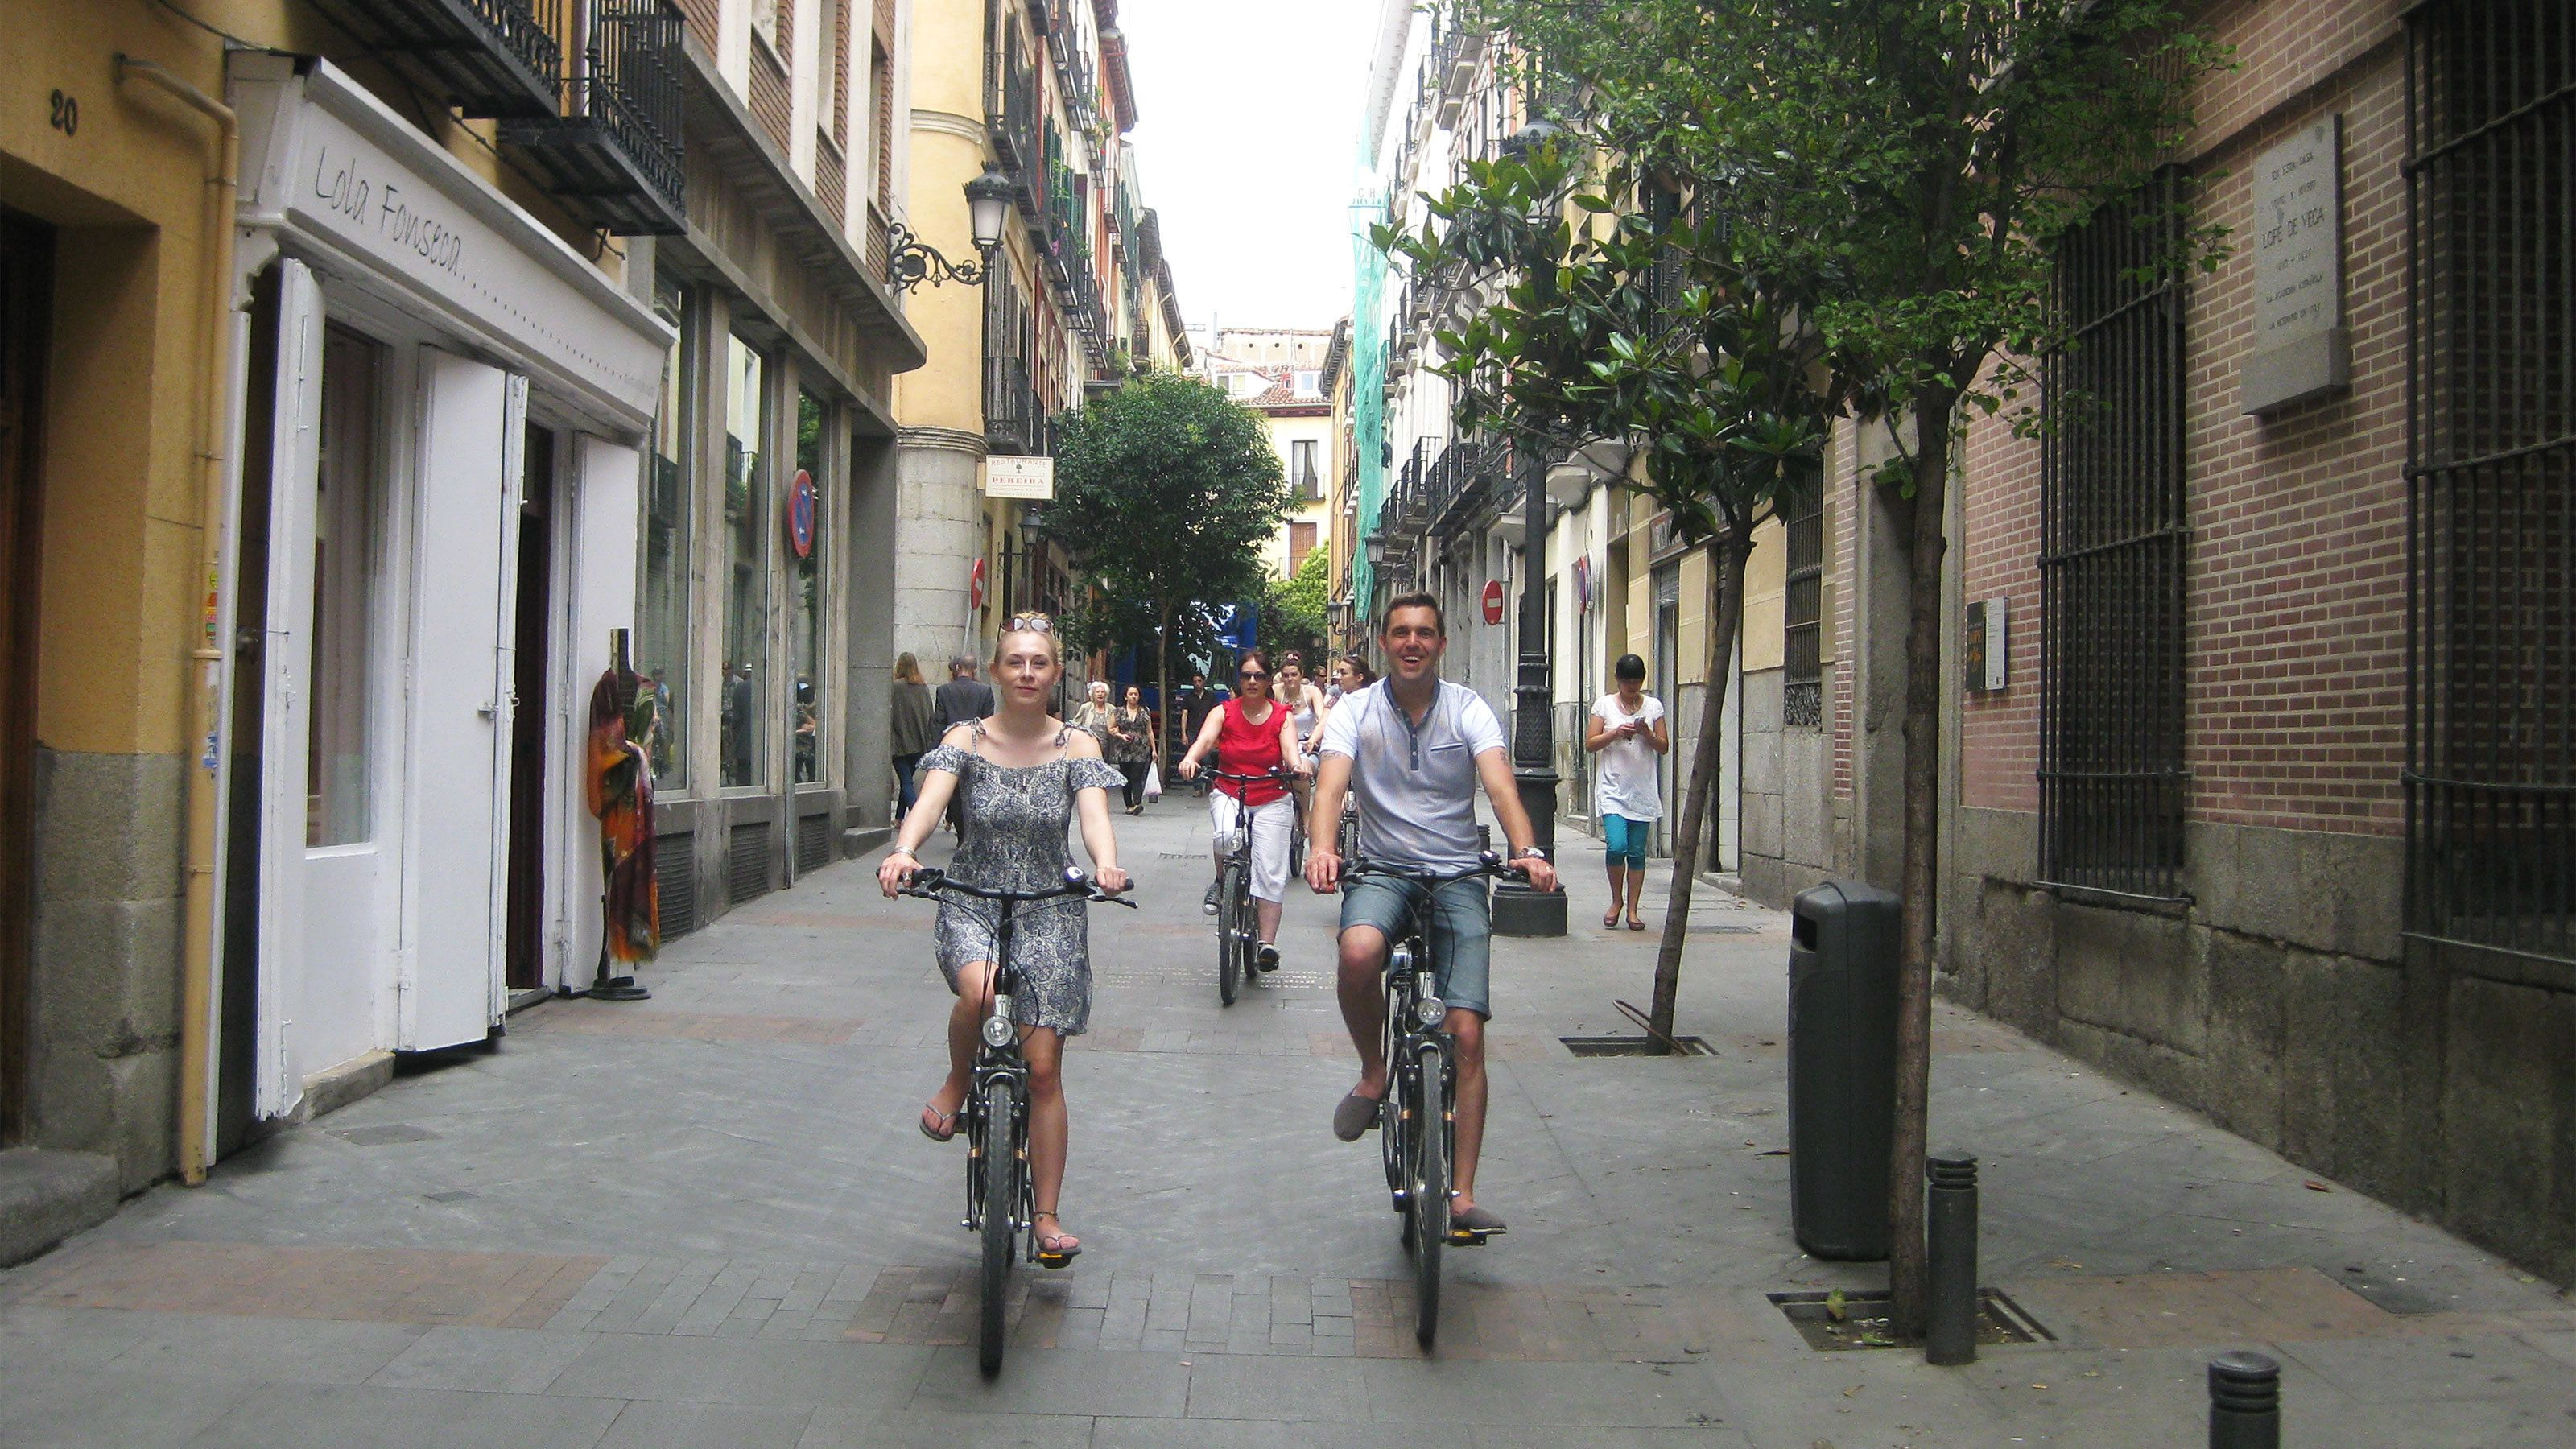 People riding bicycles down street in Madrid